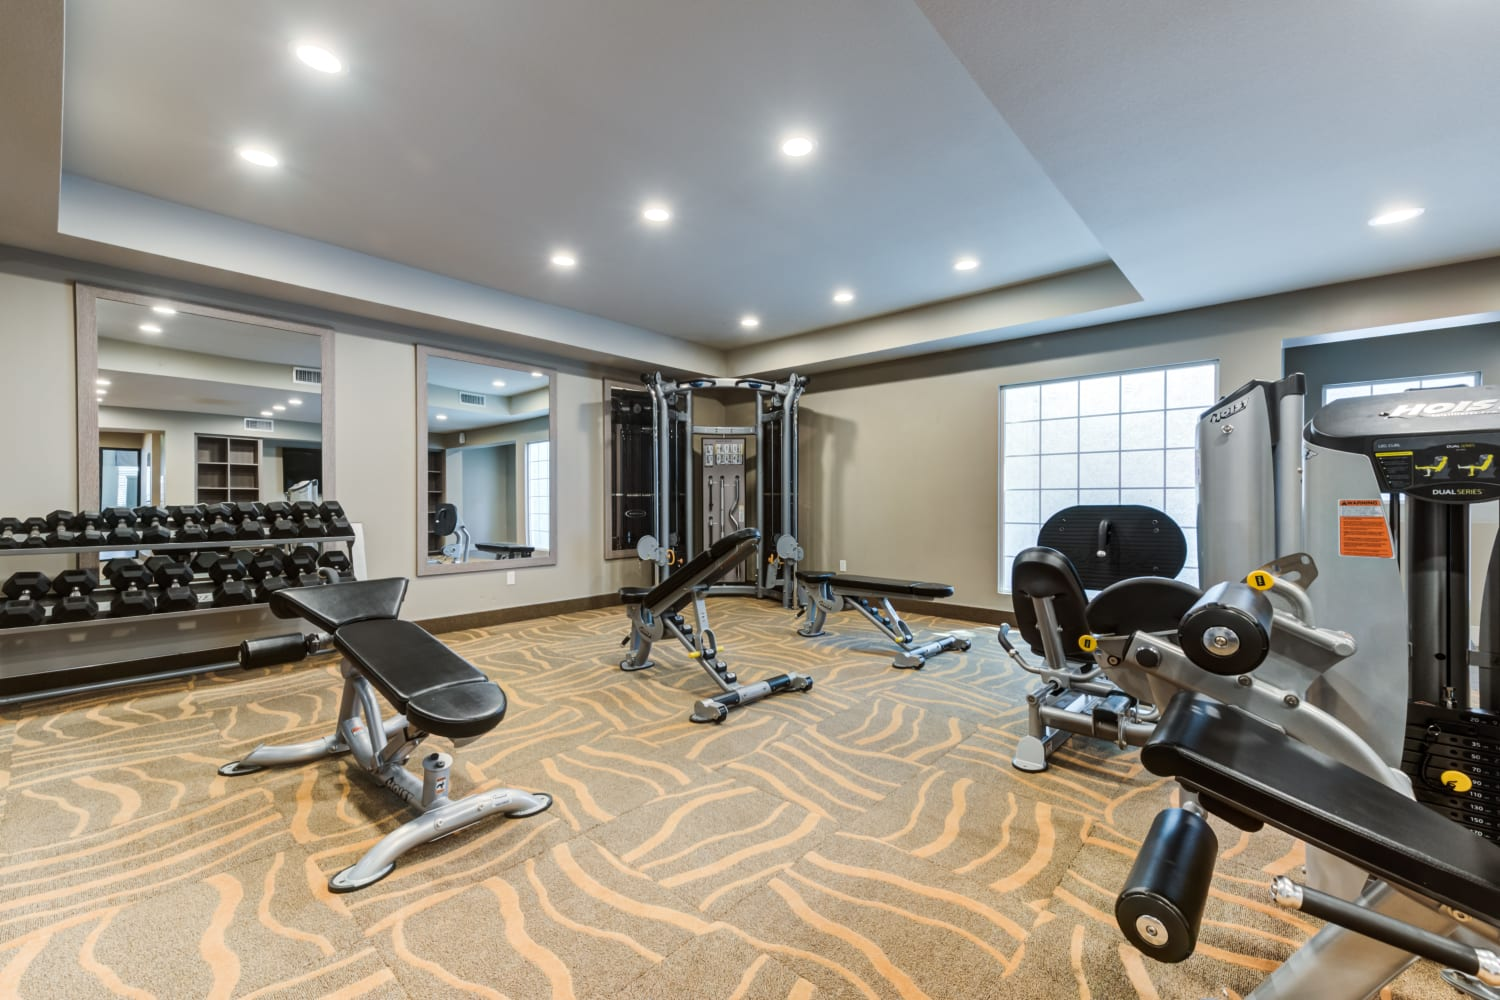 Exercise equipment and free weights in the fitness center at Sierra Heights Apartments in Rancho Cucamonga, CA